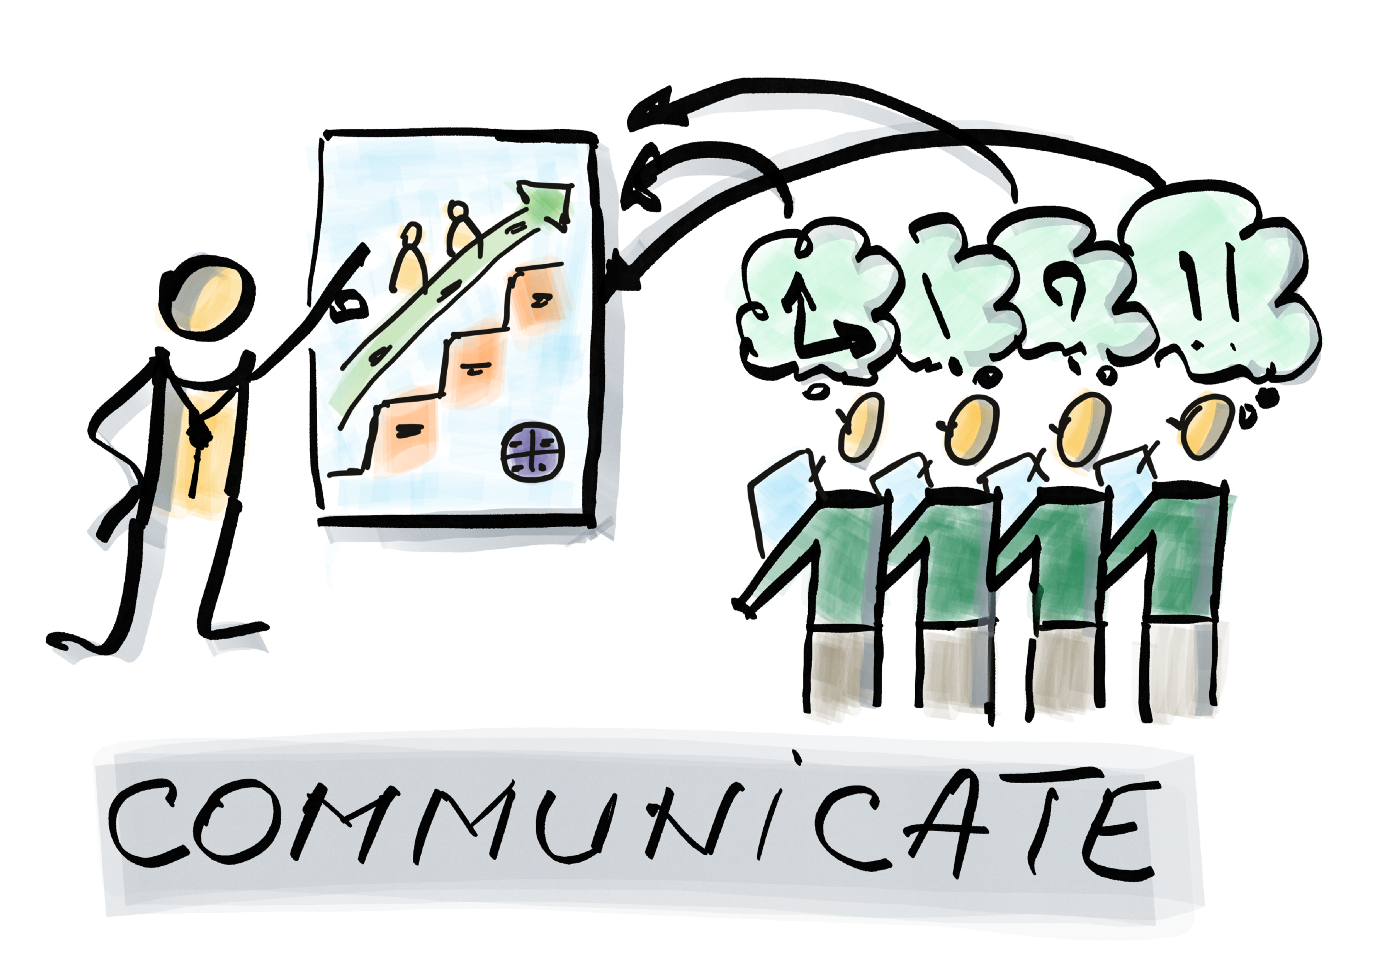 The Product Owner communicates on the characteristics of the product